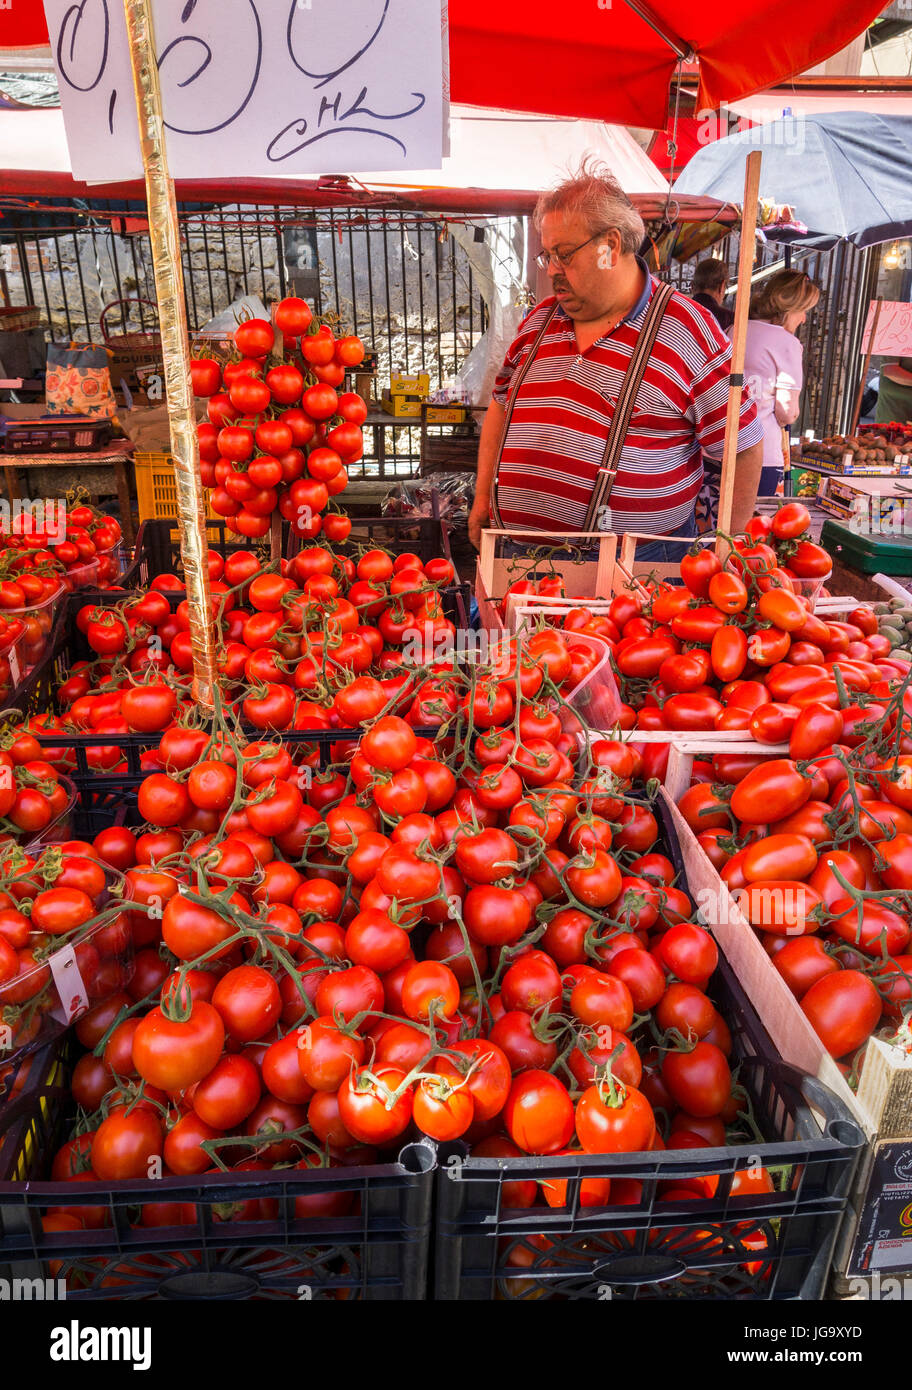 Varieties of tomatoes for sale in The Ballaro Market in the Albergheria district of central Palermo, Sicily, Italy. - Stock Image